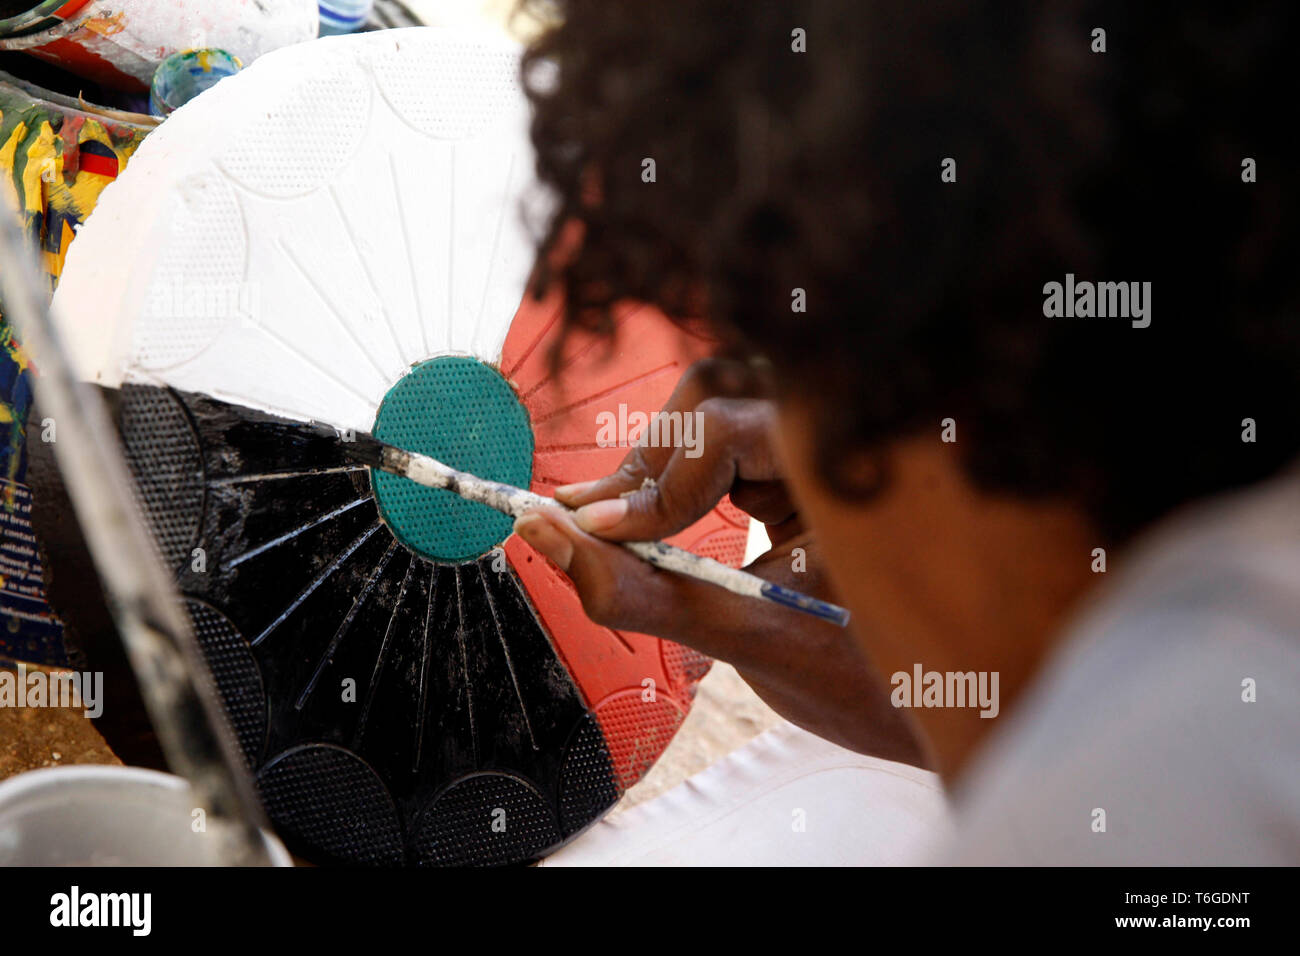 (190501) -- KHARTOUM, May 1, 2019 (Xinhua) -- A Sudanese artist creates at the sit-in site in front of the army's general headquarters in support of the protesters, in Khartoum, Sudan, May 1, 2019. (Xinhua/Mohamed Khidir) - Stock Image